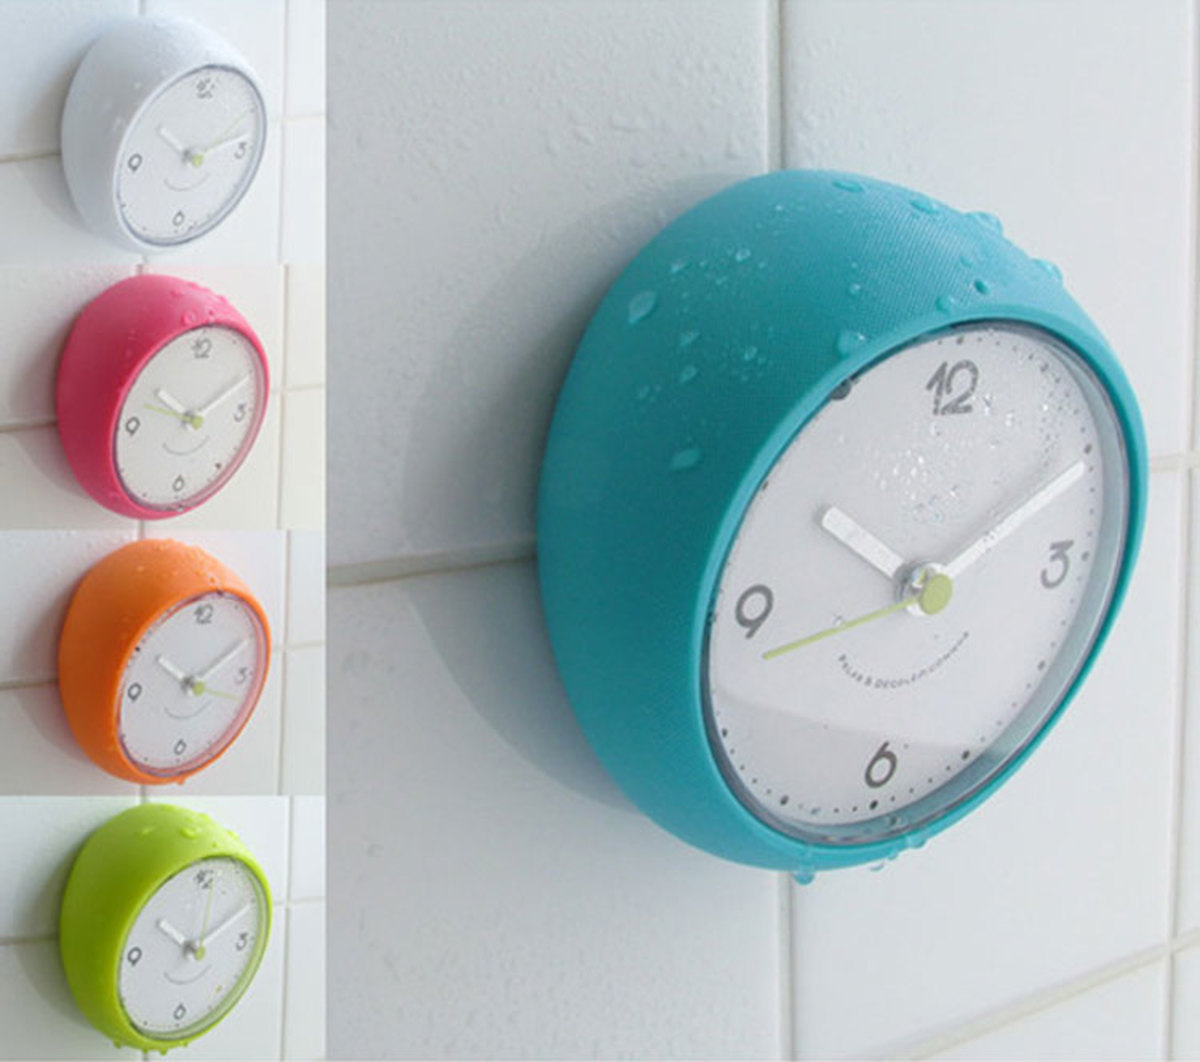 Get a Bathroom Clock and Limit Your Time Spent There!